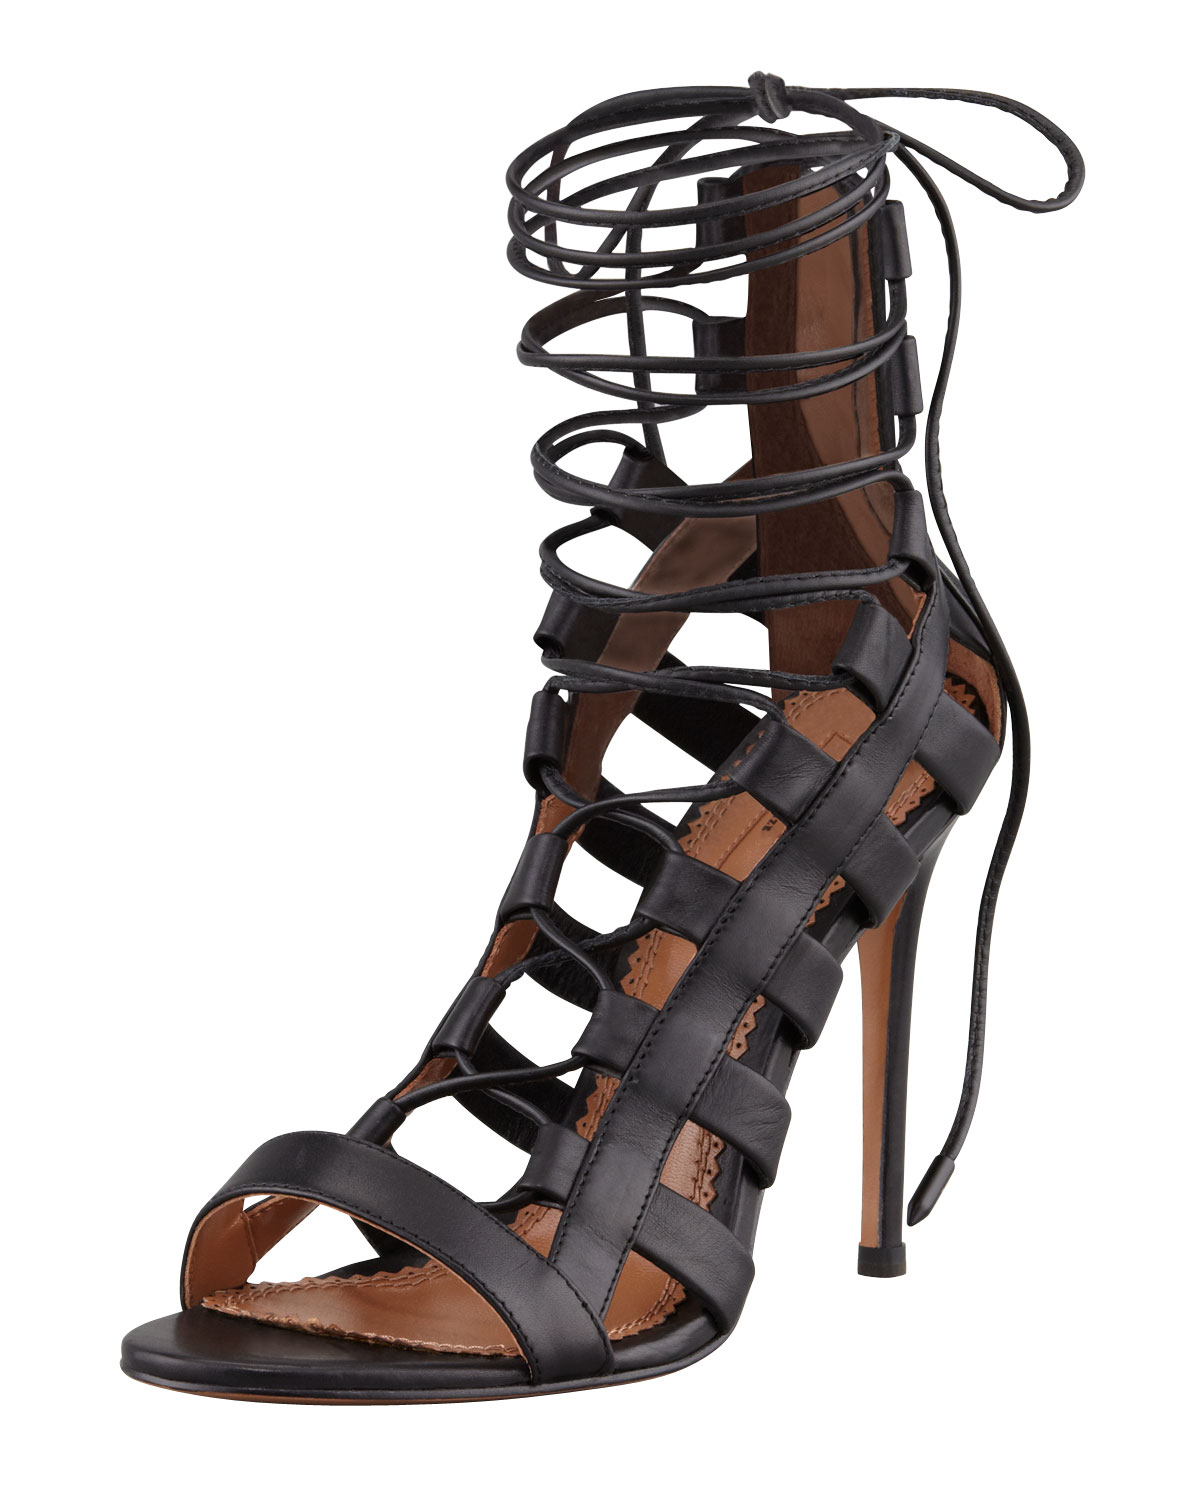 3f3b419d2a0 Aquazzura Amazon Lace-Up Ankle-Wrap Sandal